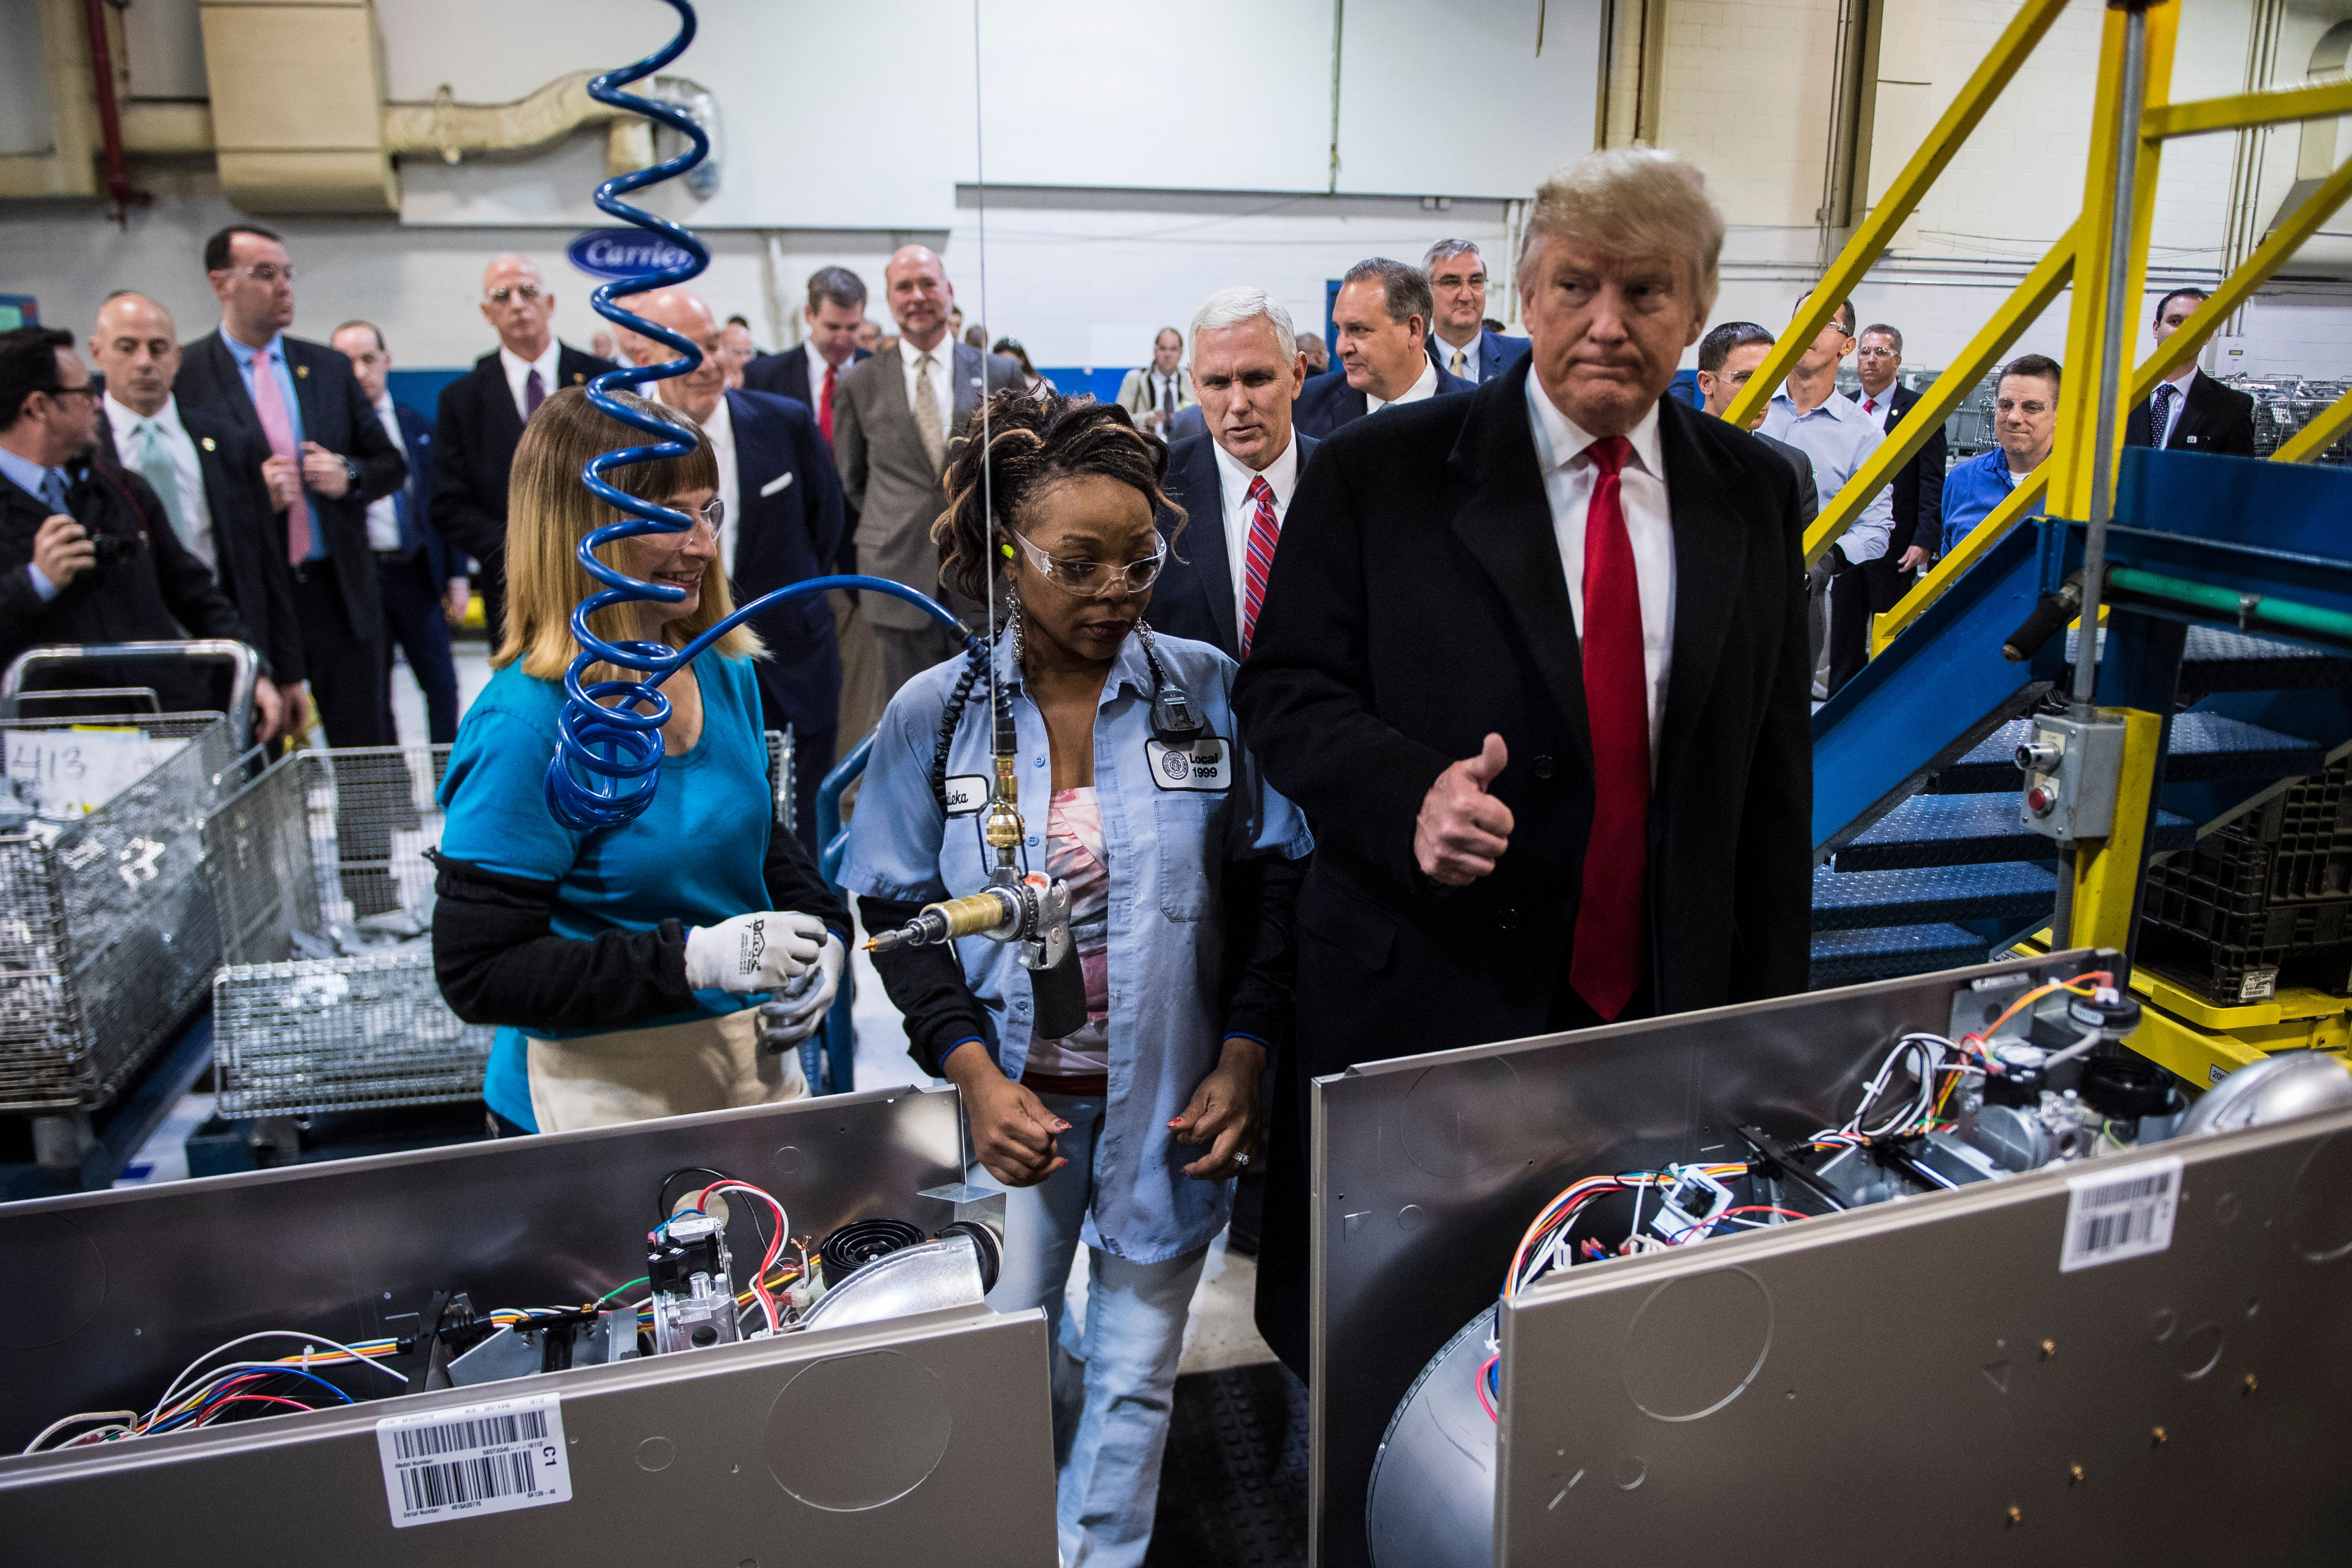 Layoffs Near At Carrier Factory 'Saved' By Trump